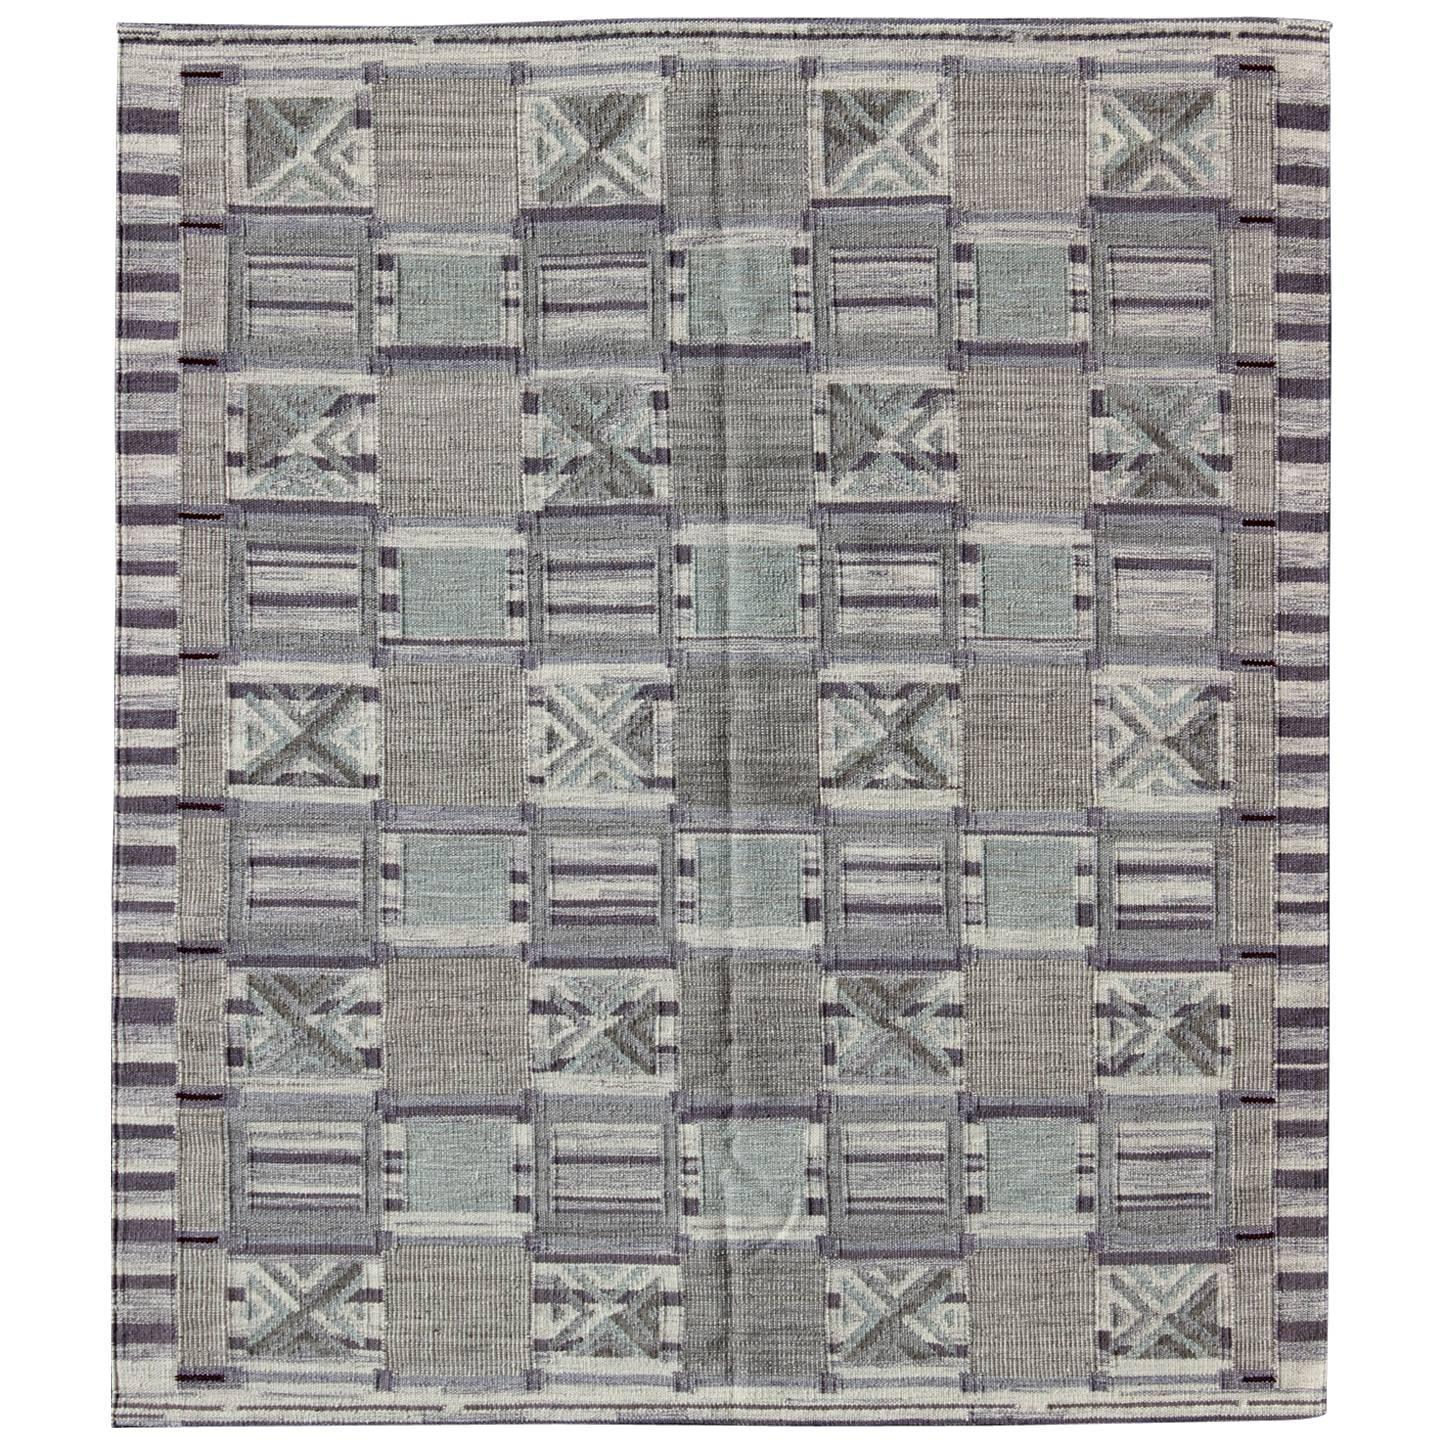 Mid 20th Century Modern Scandinavian Area Rug At 1stdibs: Modern Scandinavian Kilim Carpet With Geometric Design For